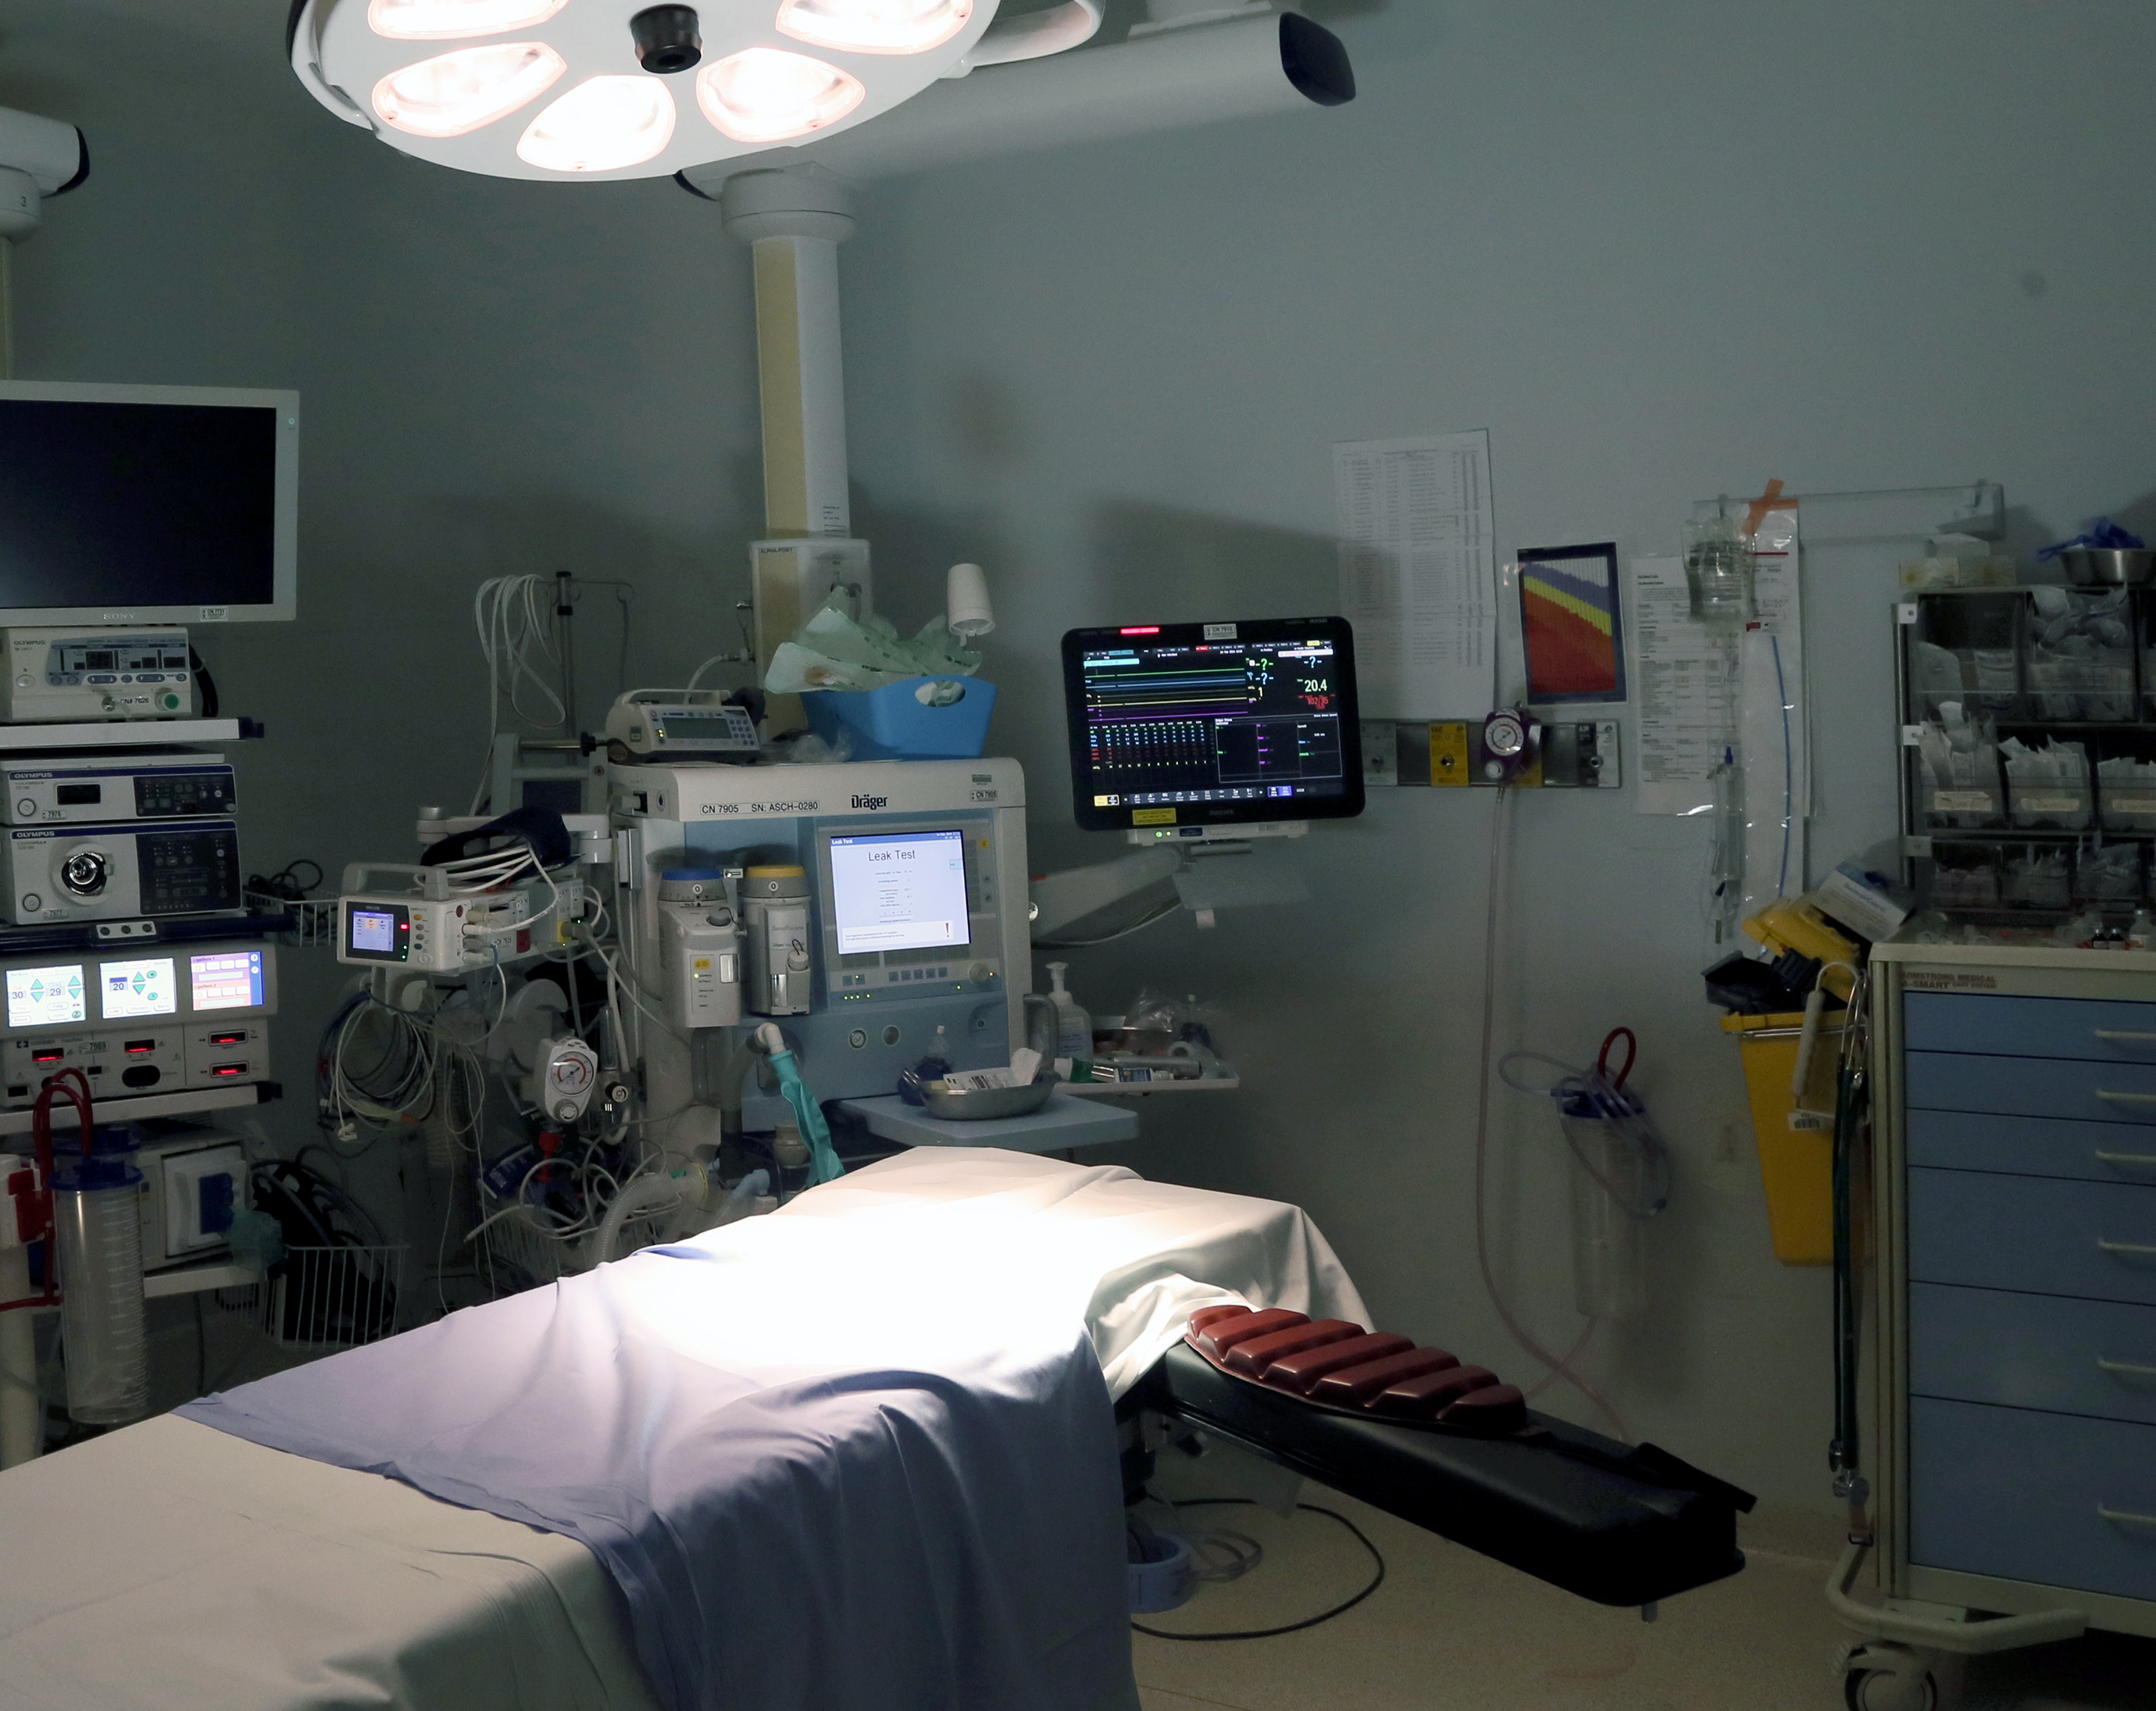 Automated Anesthesiologist Suffers a Painful Defeat - MIT Technology Review